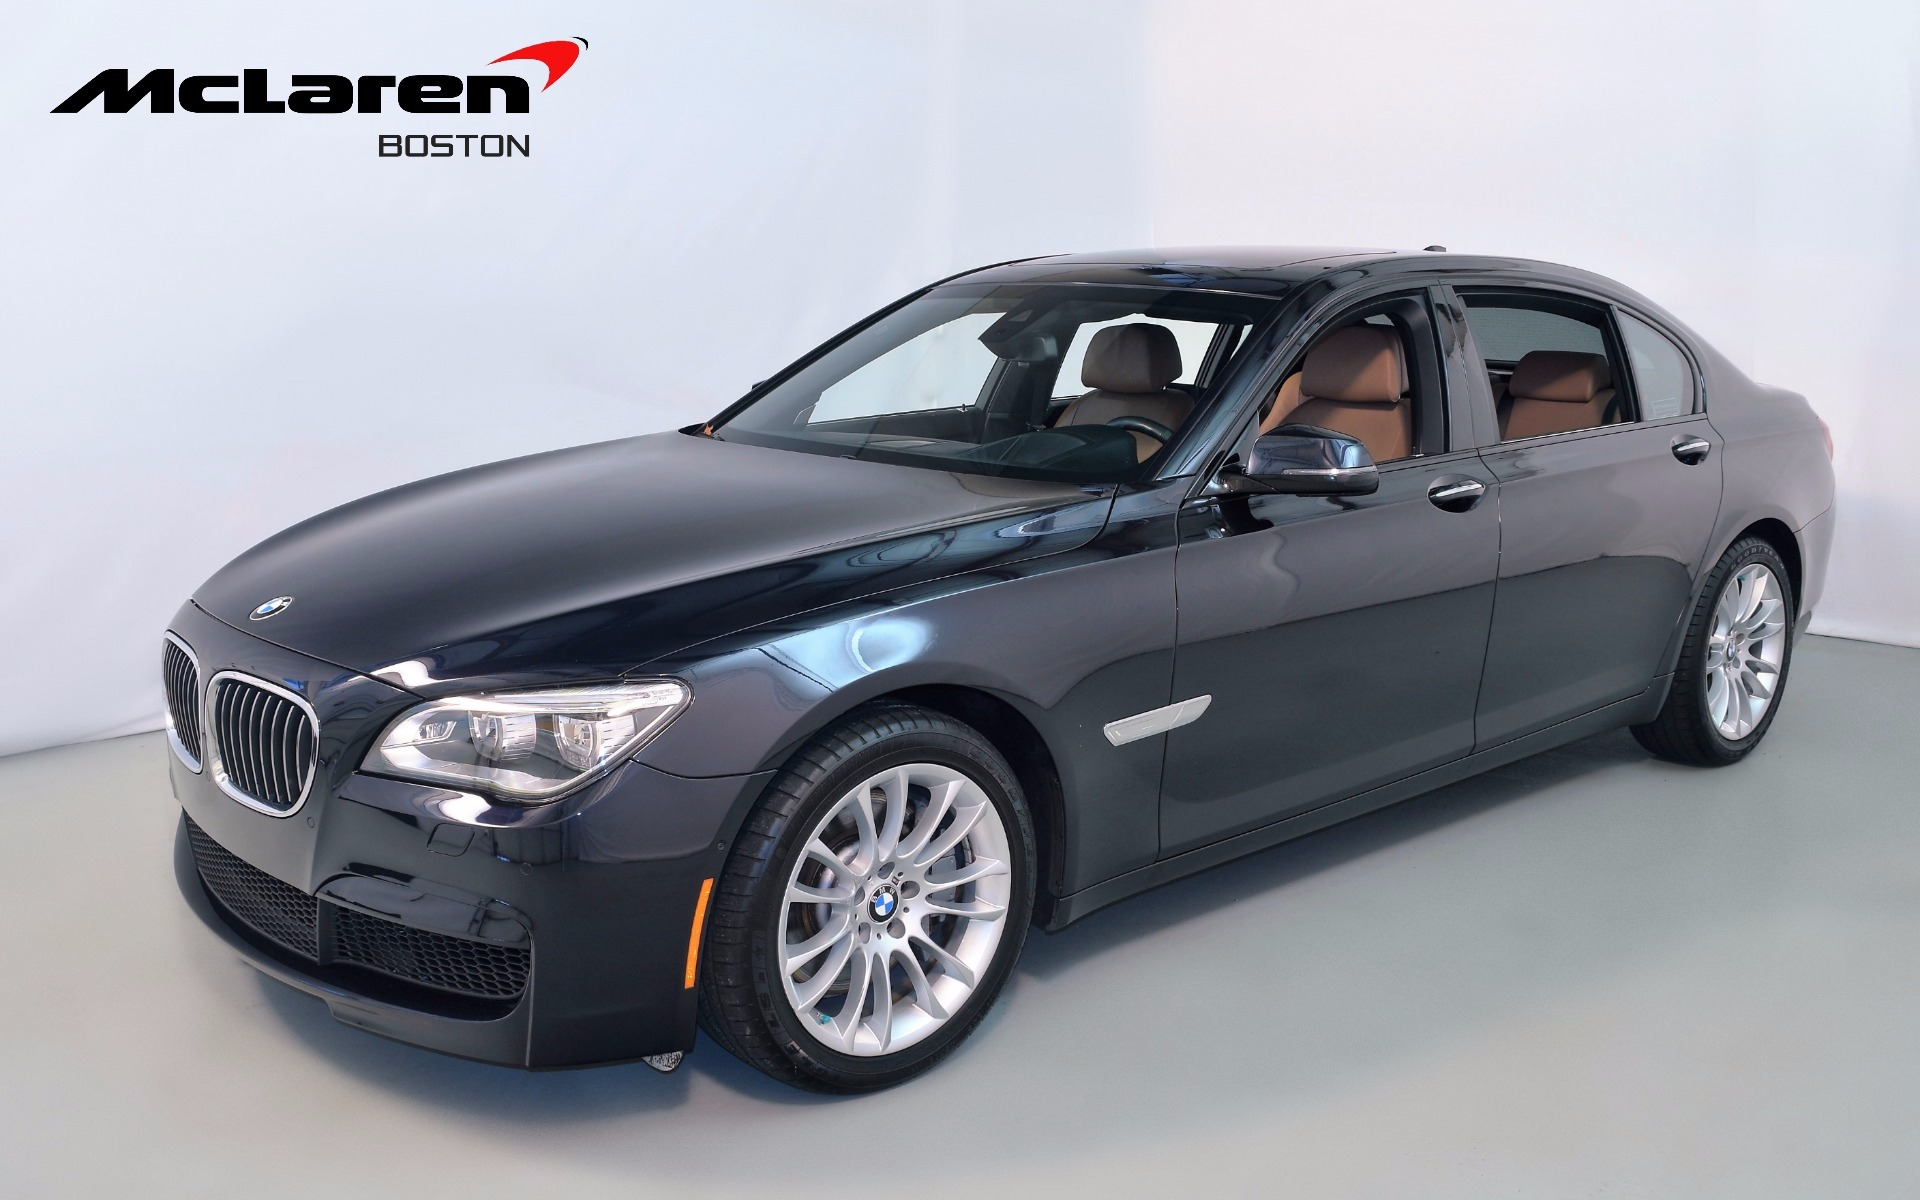 2014 Bmw 750Li >> 2014 Bmw 7 Series 750li Xdrive For Sale In Norwell Ma 142179